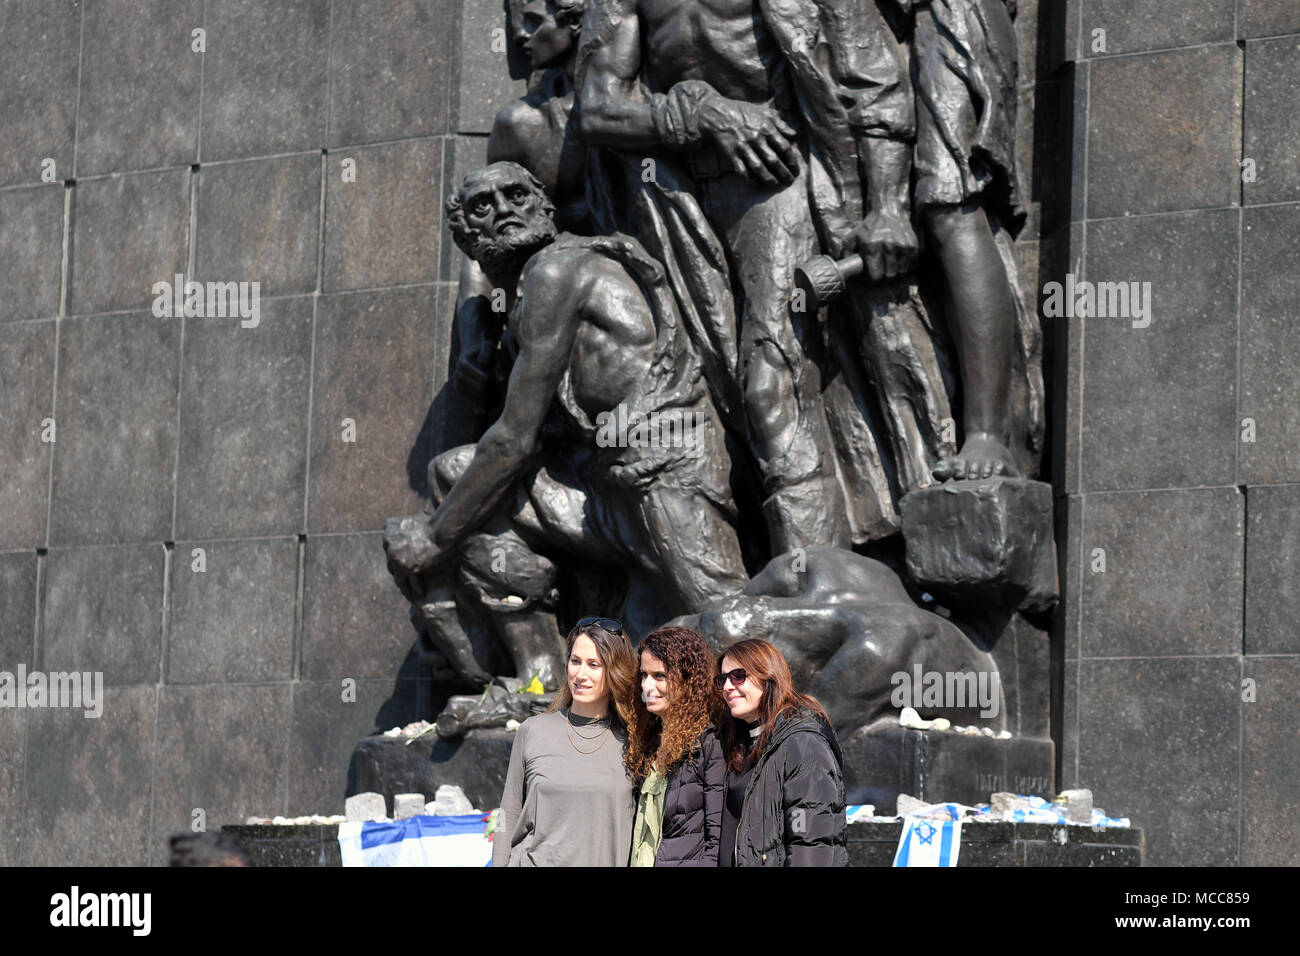 Warsaw Poland Visitors at the Monument to the Ghetto Heroes of the Warsaw Ghetto Uprising - Stock Image